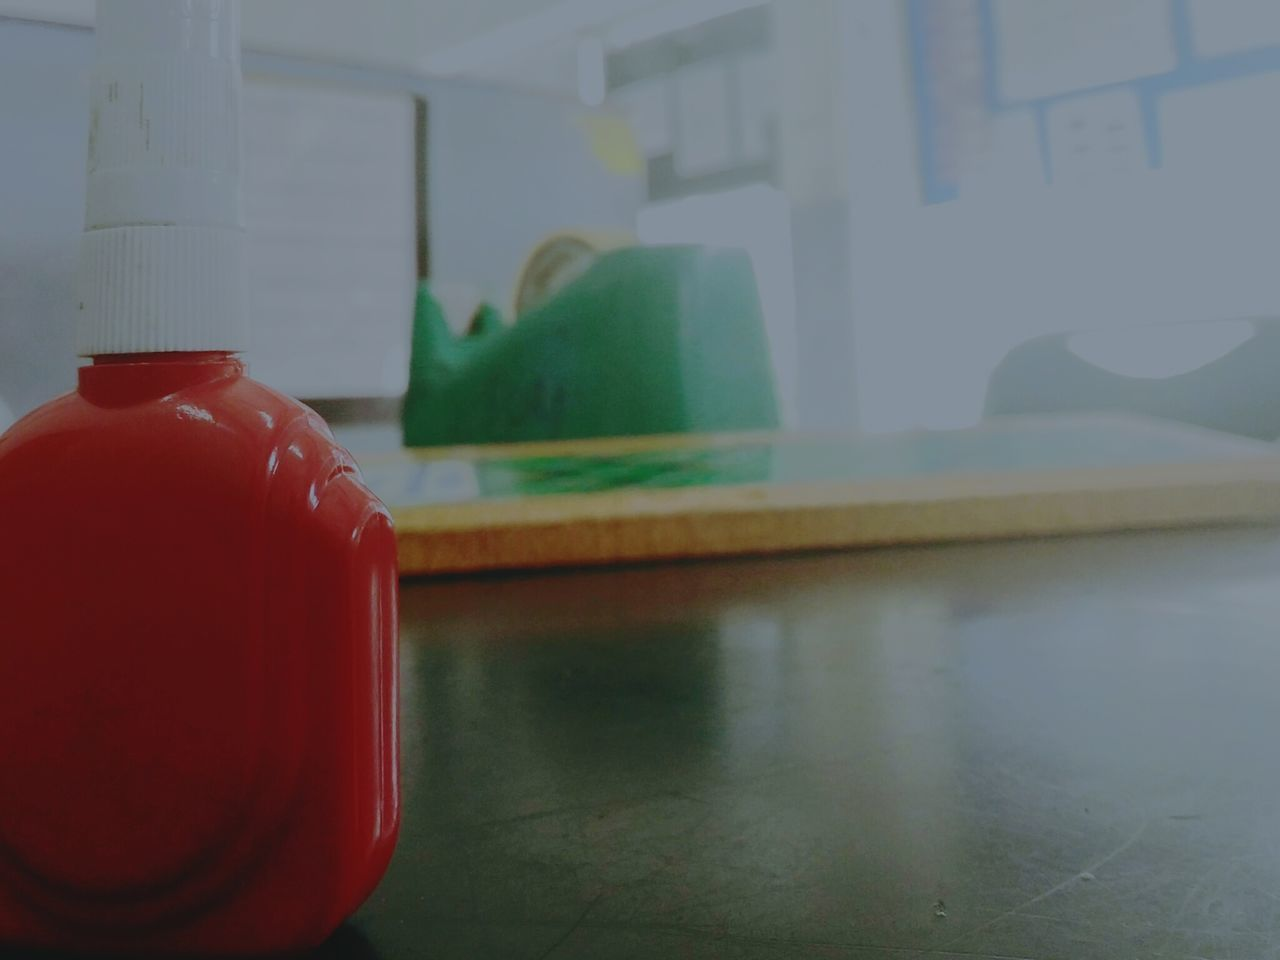 indoors, red, table, focus on foreground, home interior, close-up, no people, technology, day